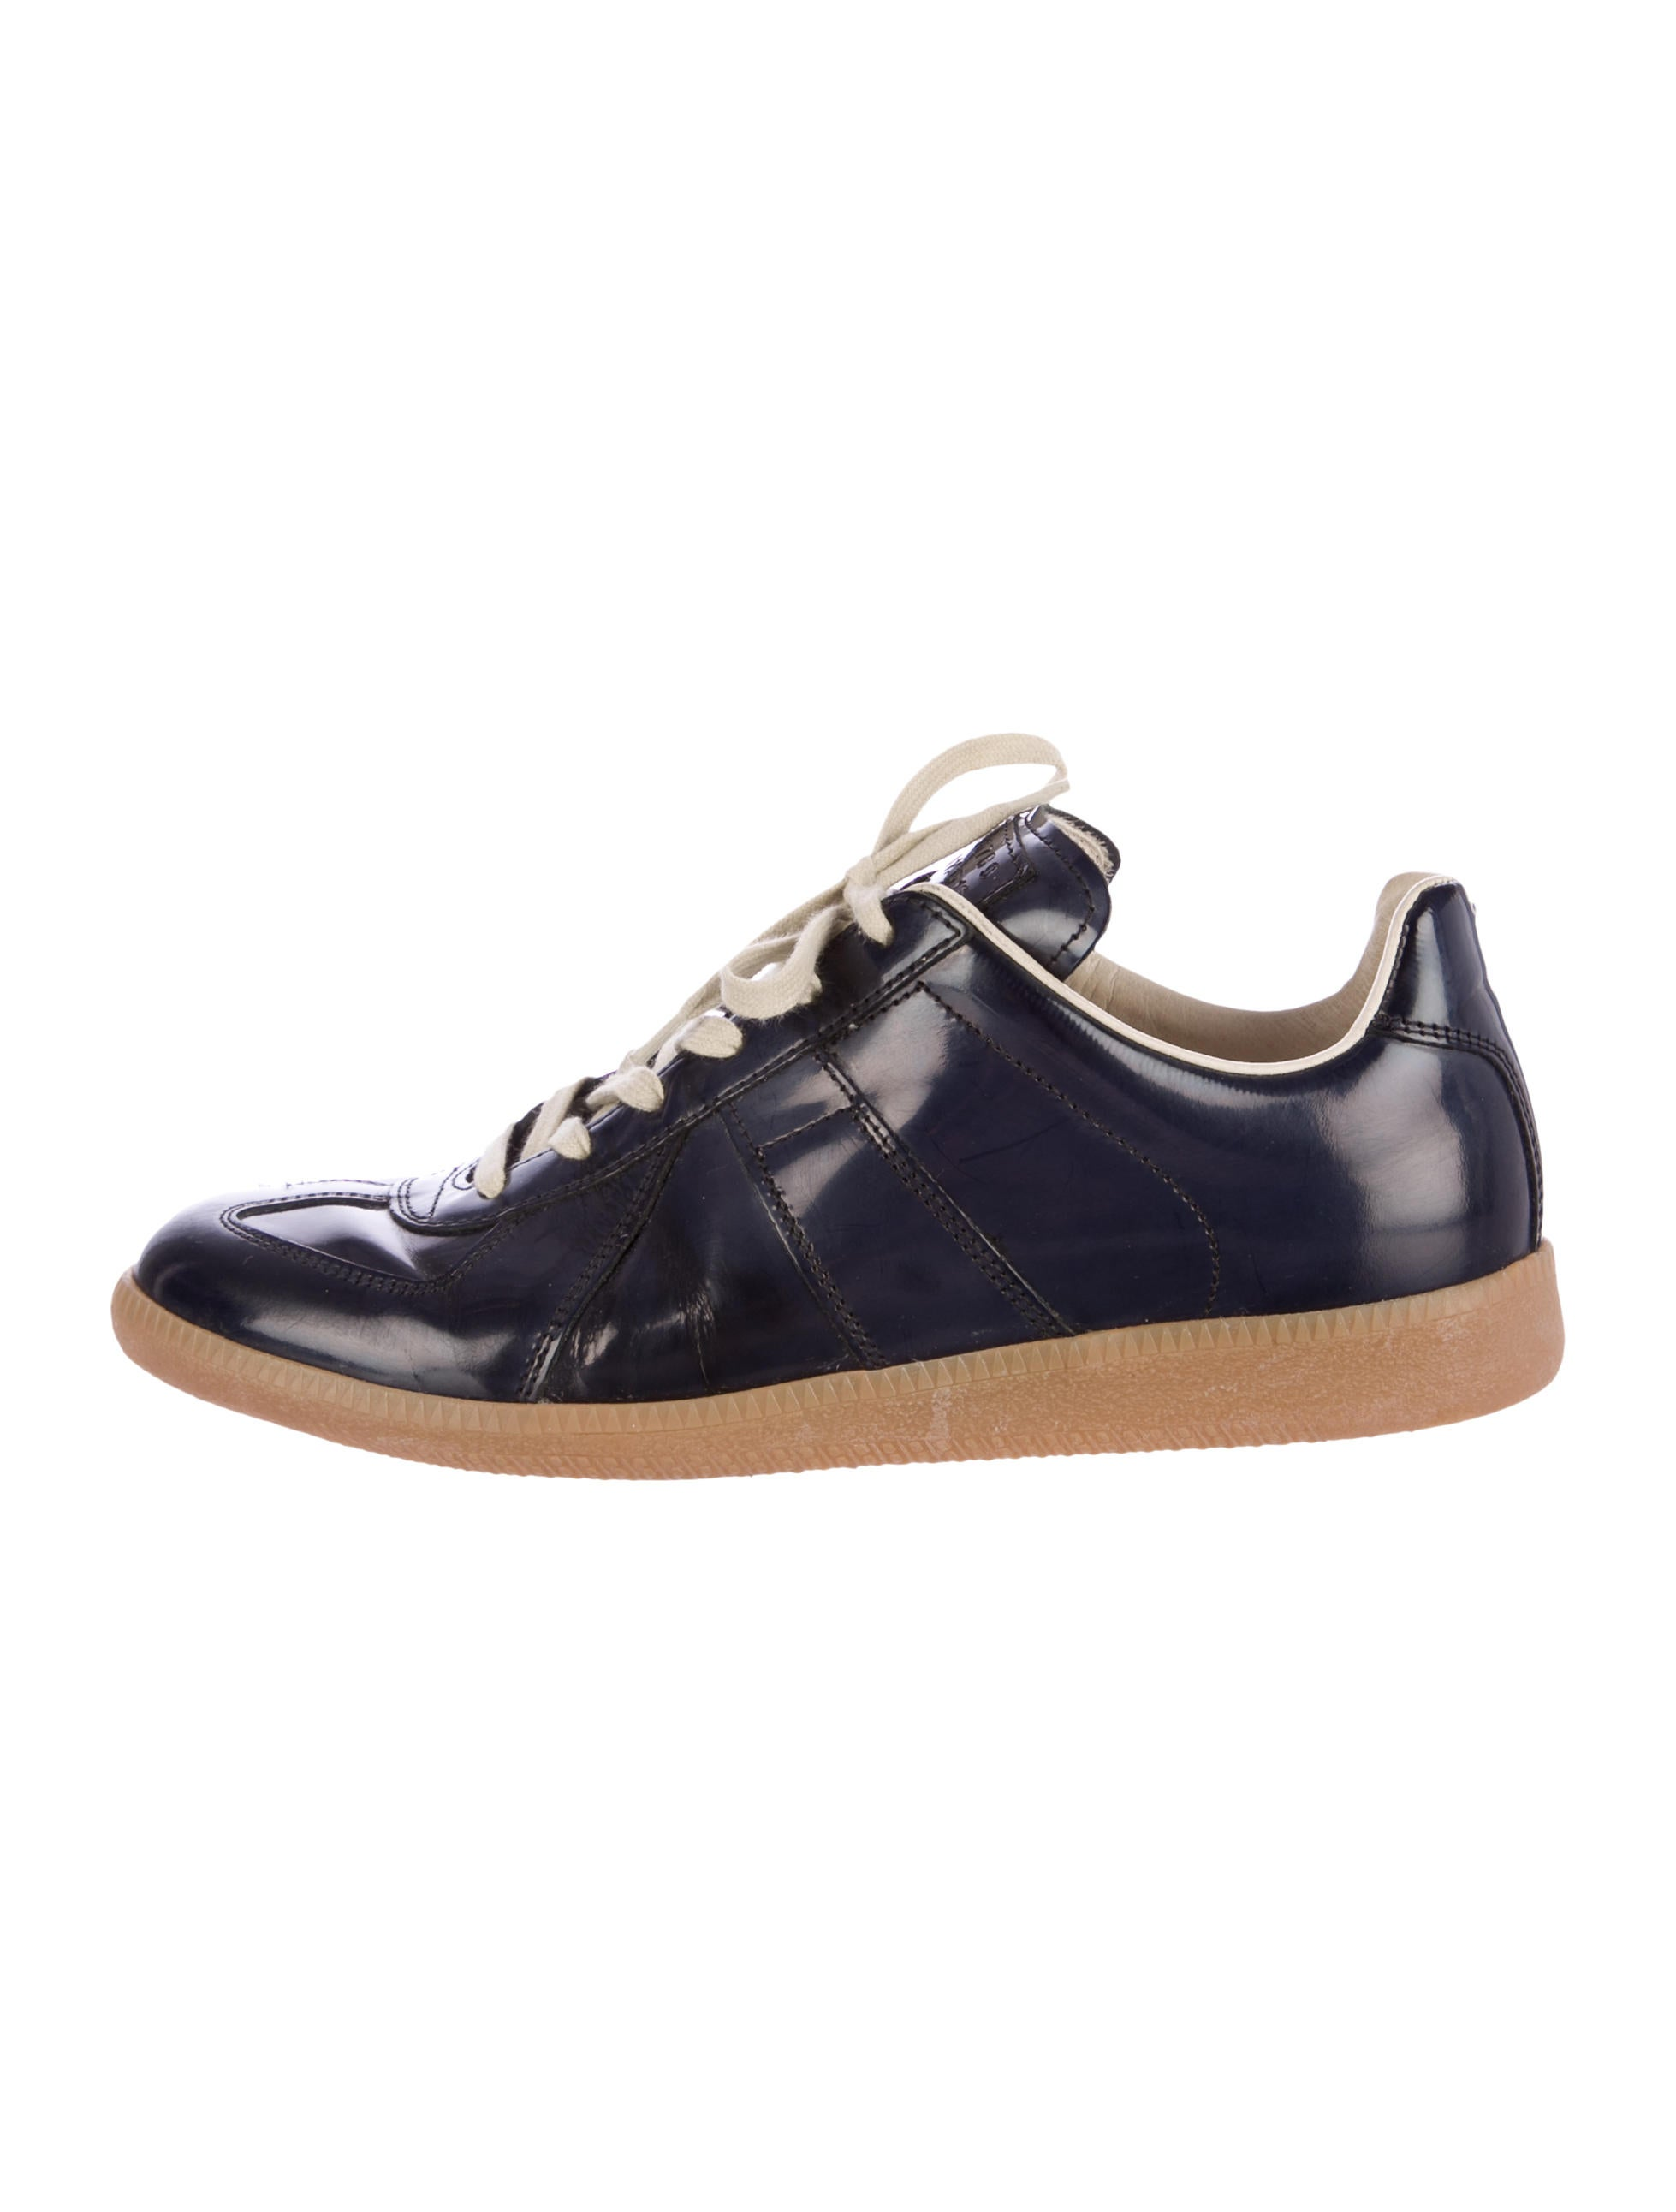 maison martin margiela leather low top sneakers shoes mai25408 the realreal. Black Bedroom Furniture Sets. Home Design Ideas